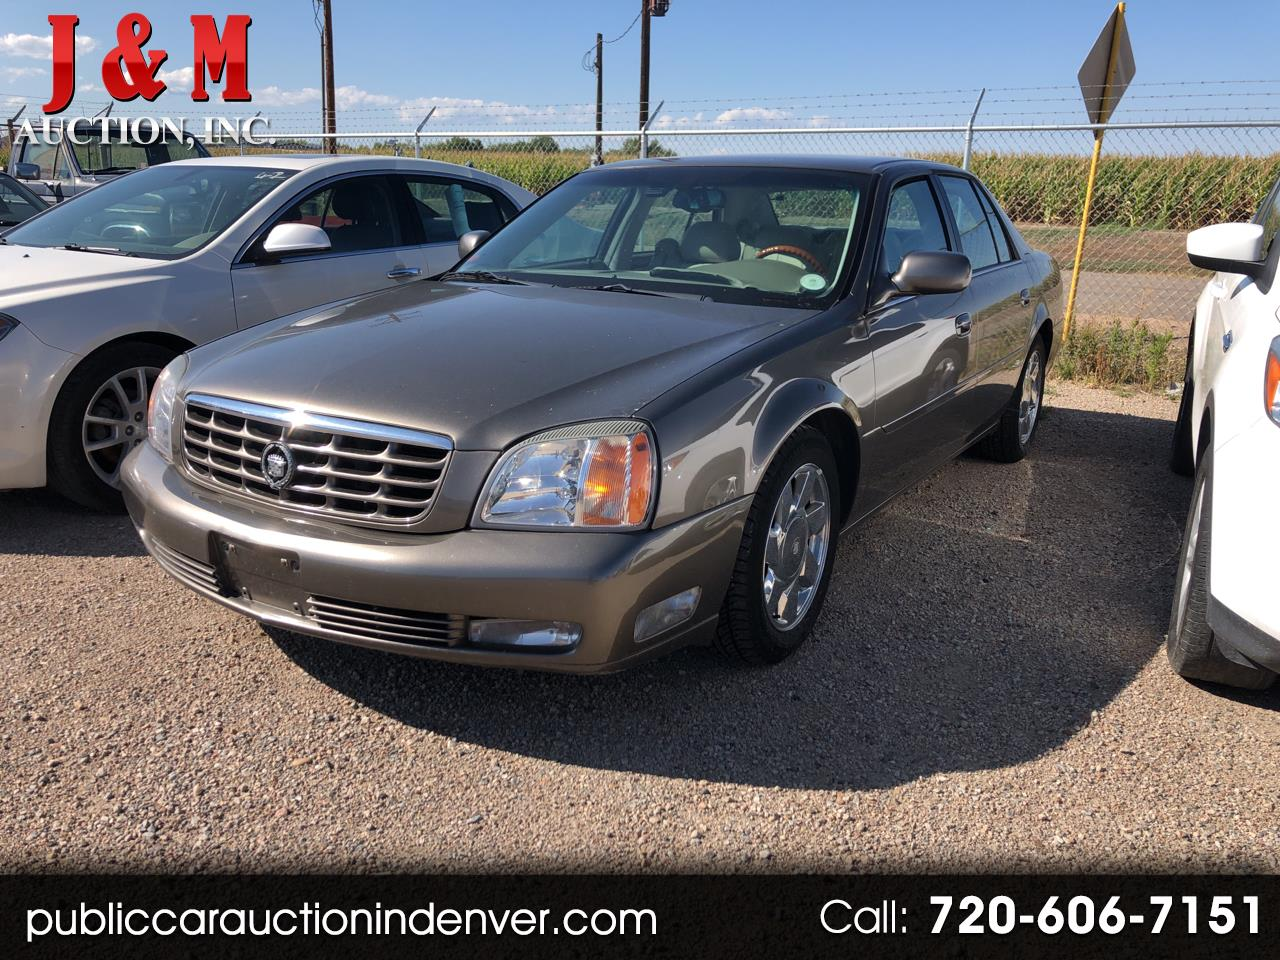 2000 Cadillac DeVille DTS 4dr Sdn